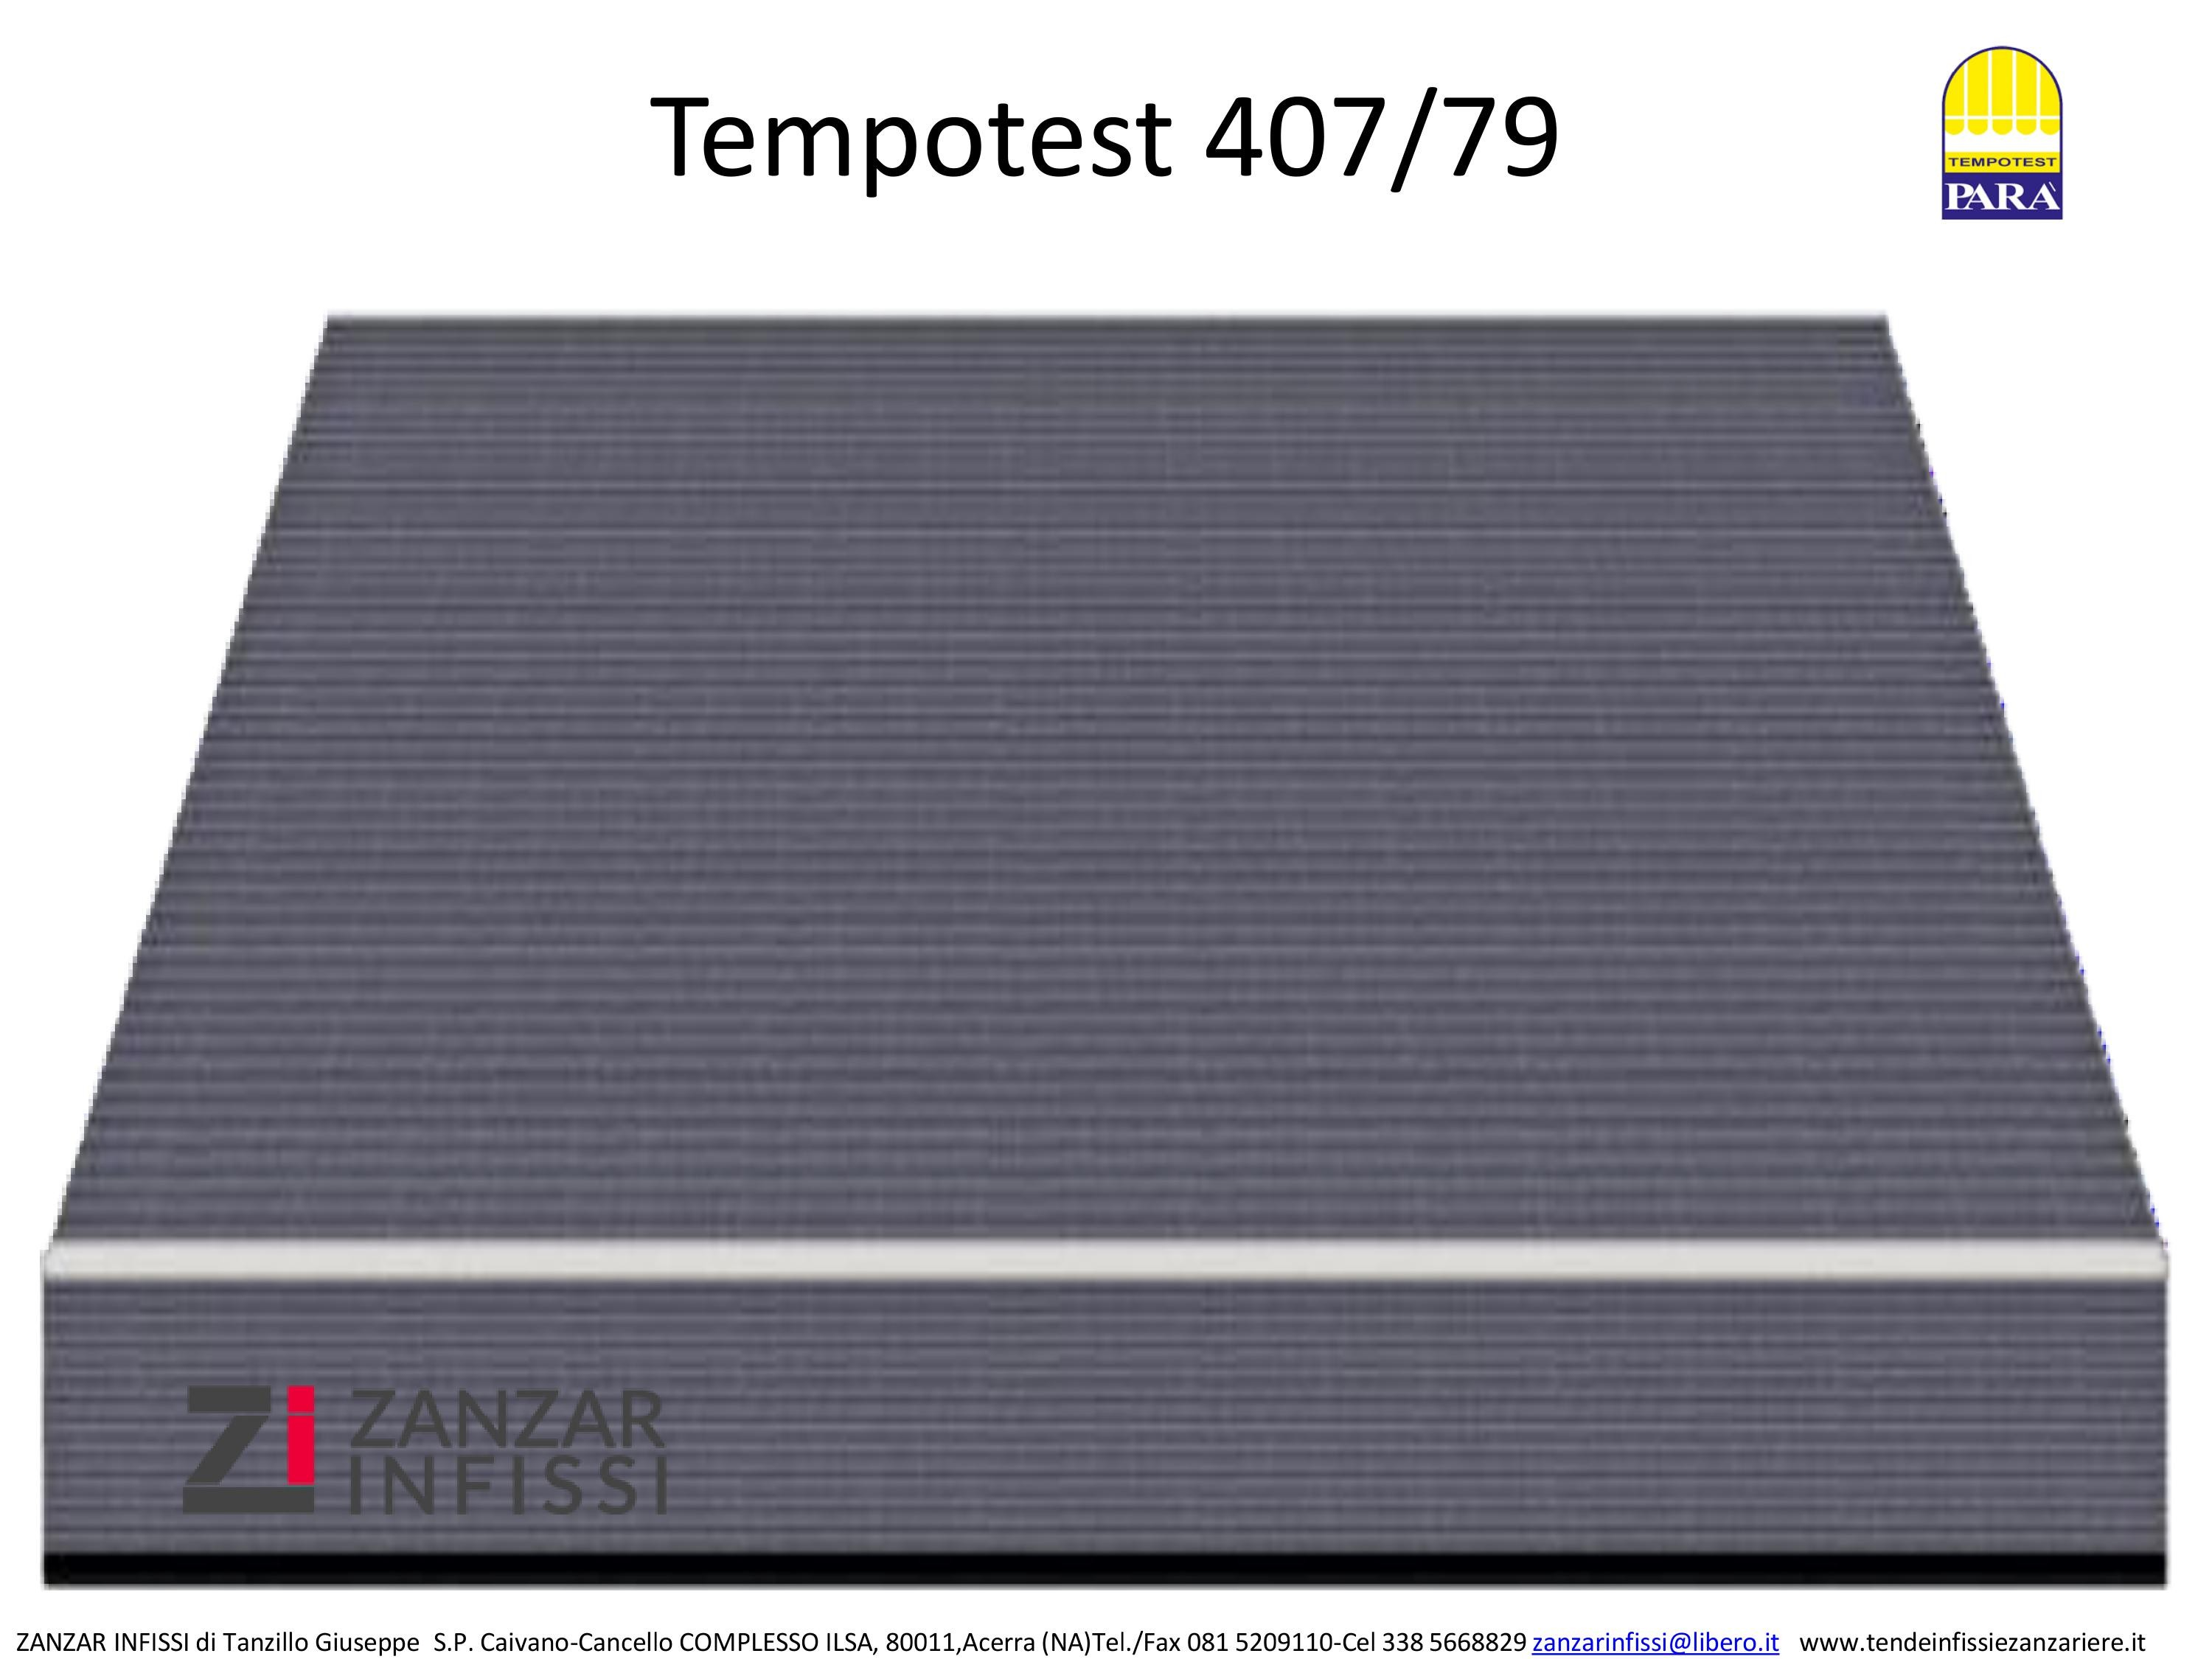 Tempotest 407/79